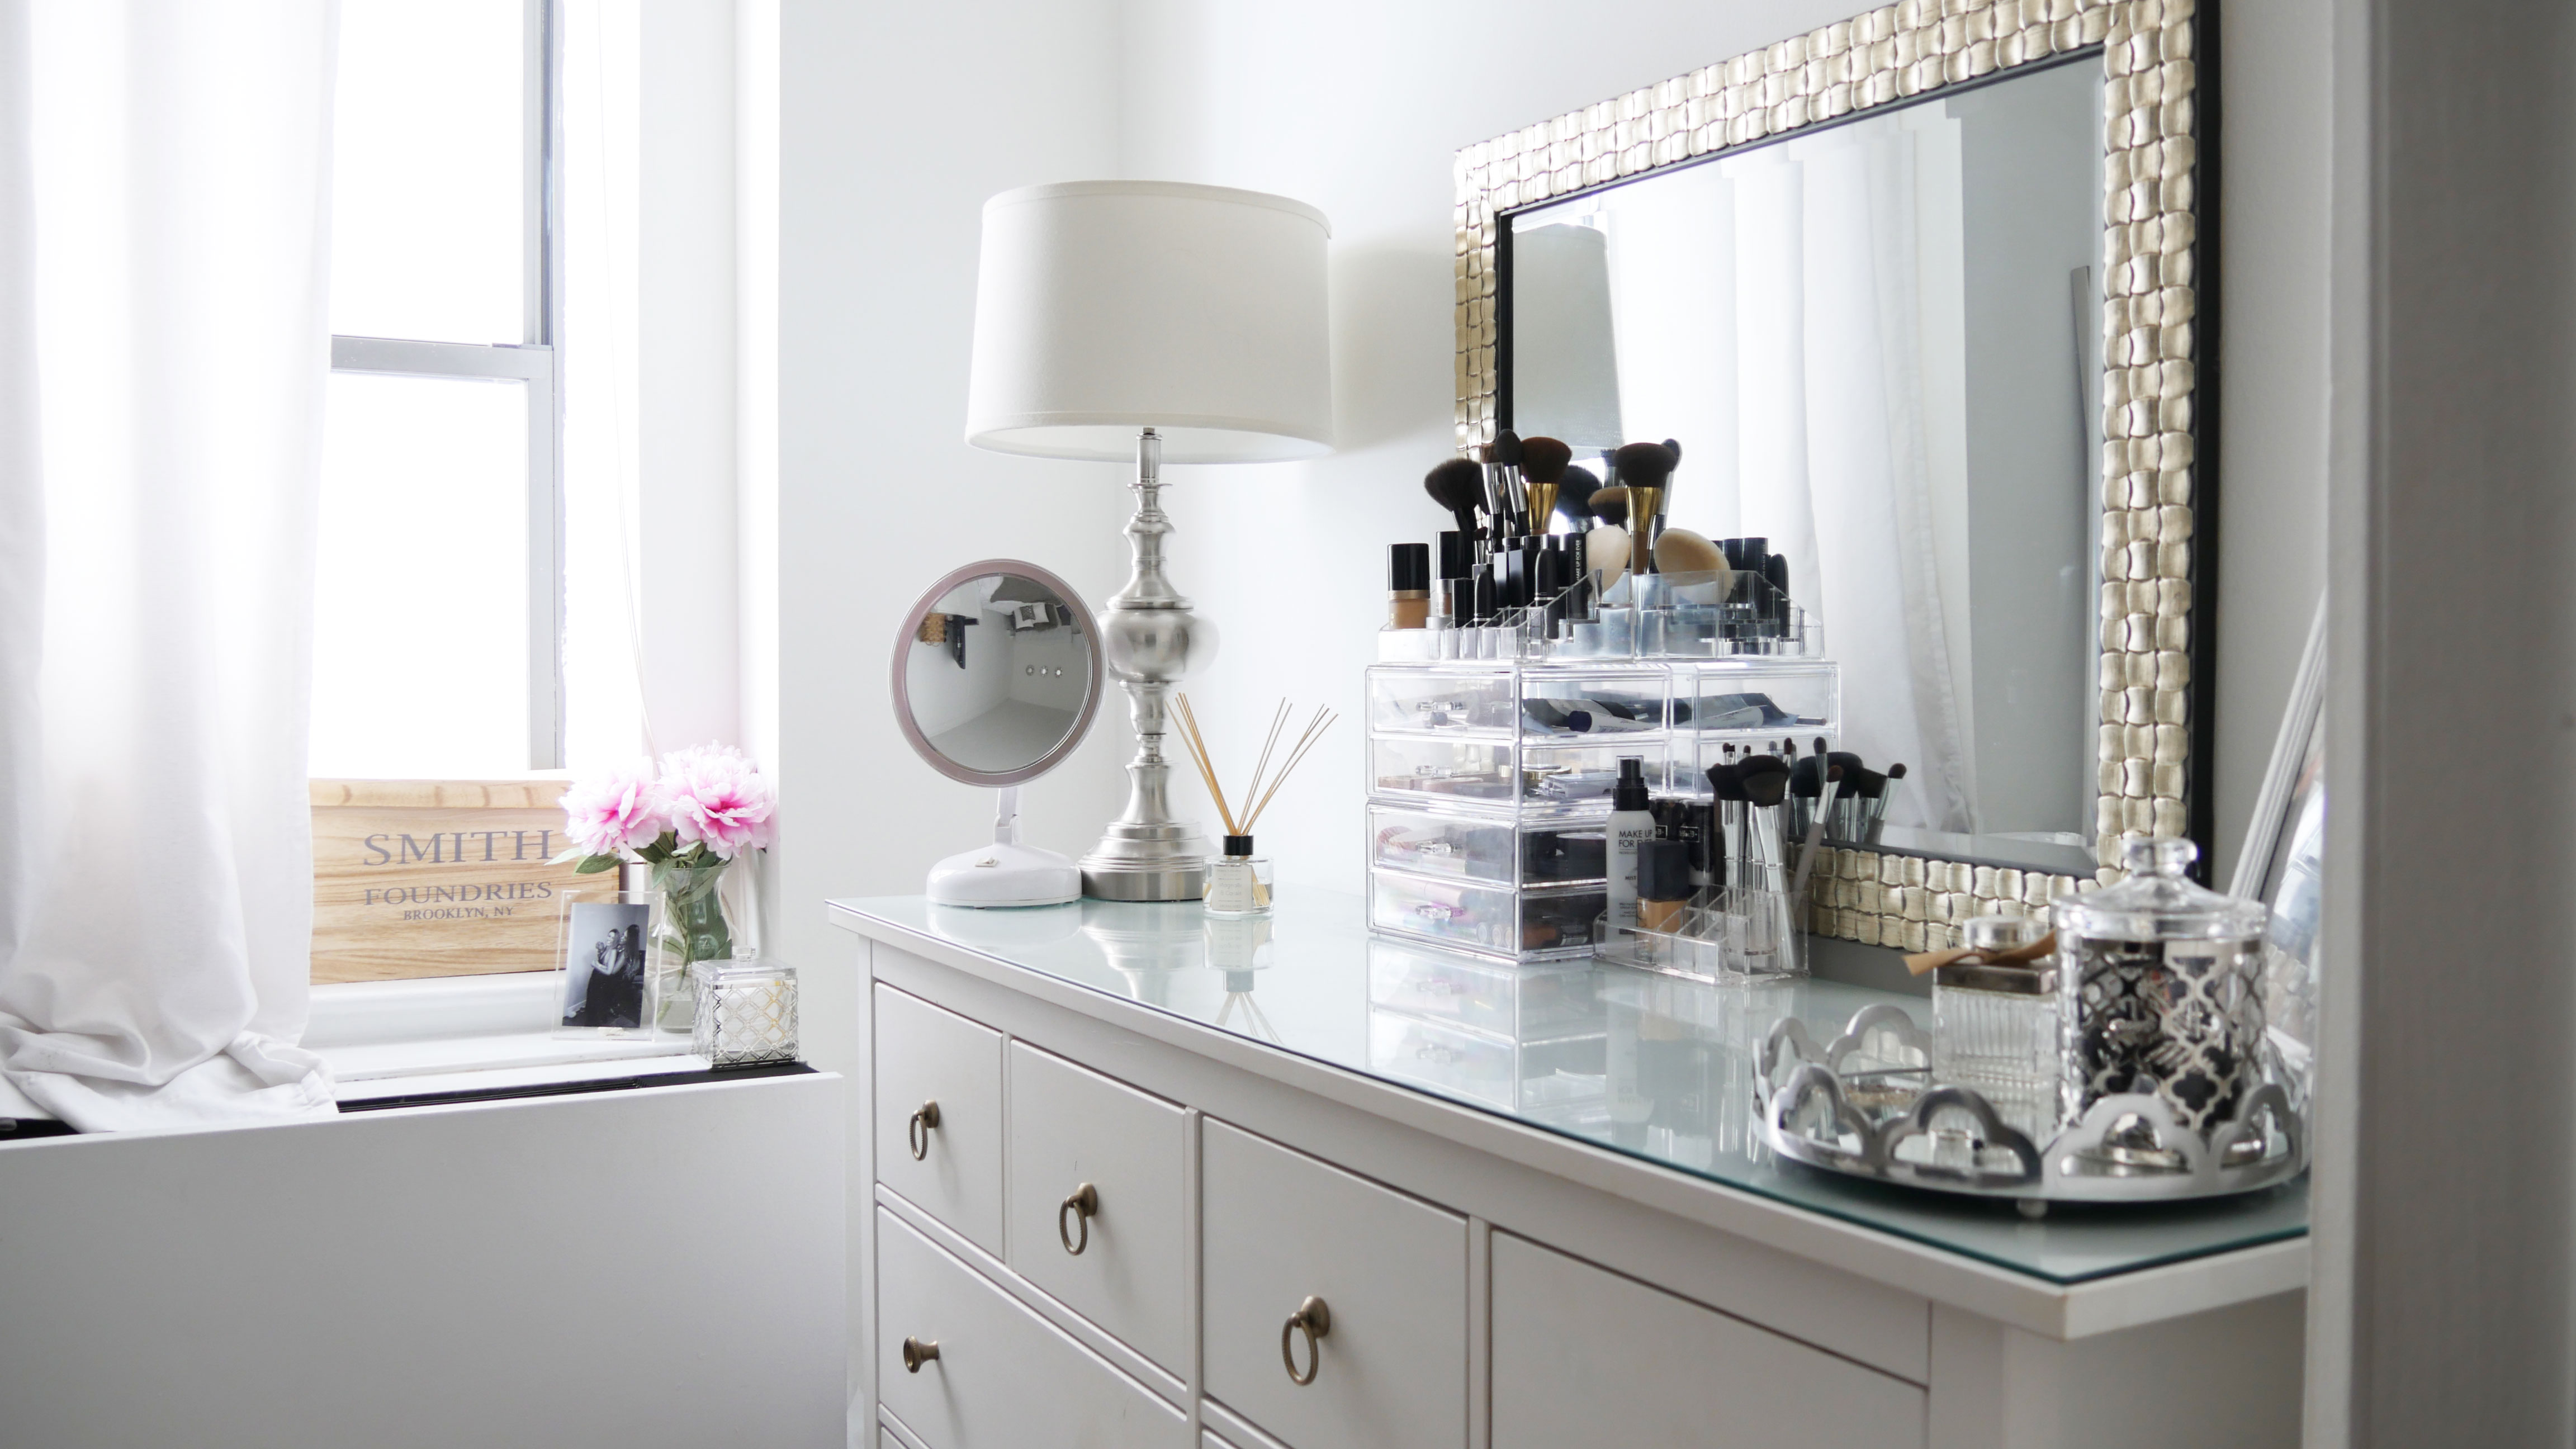 HOW TO KEEP YOUR DRESSER NEAT, TIDY AND GLAM - City Chic Decor